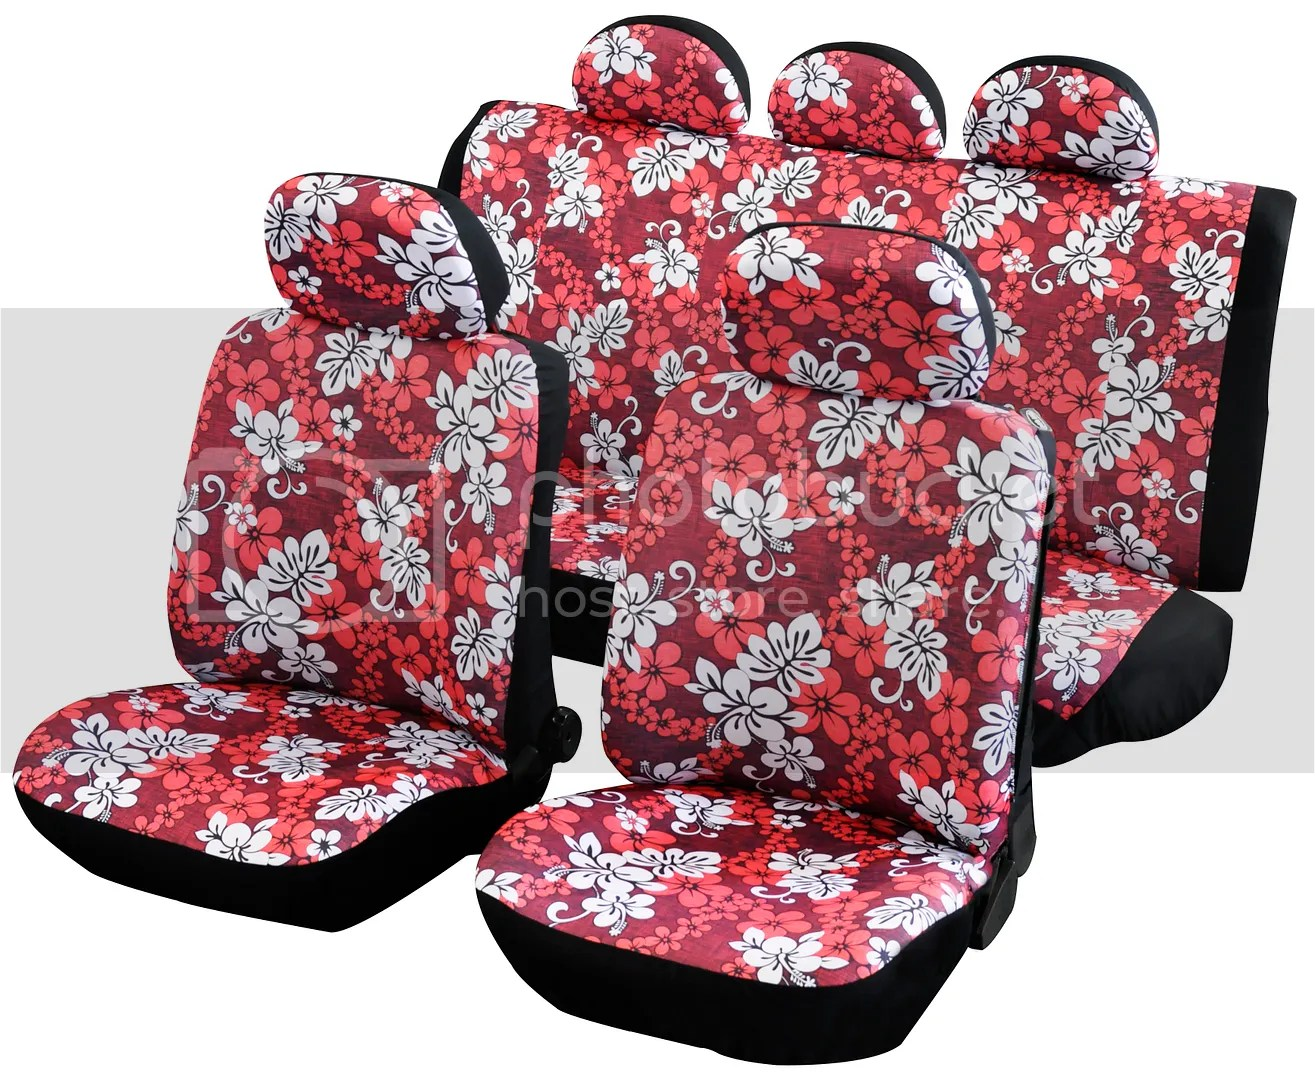 hawaiian chair covers big lots beach chairs genuine quality universal fit car seat fits most